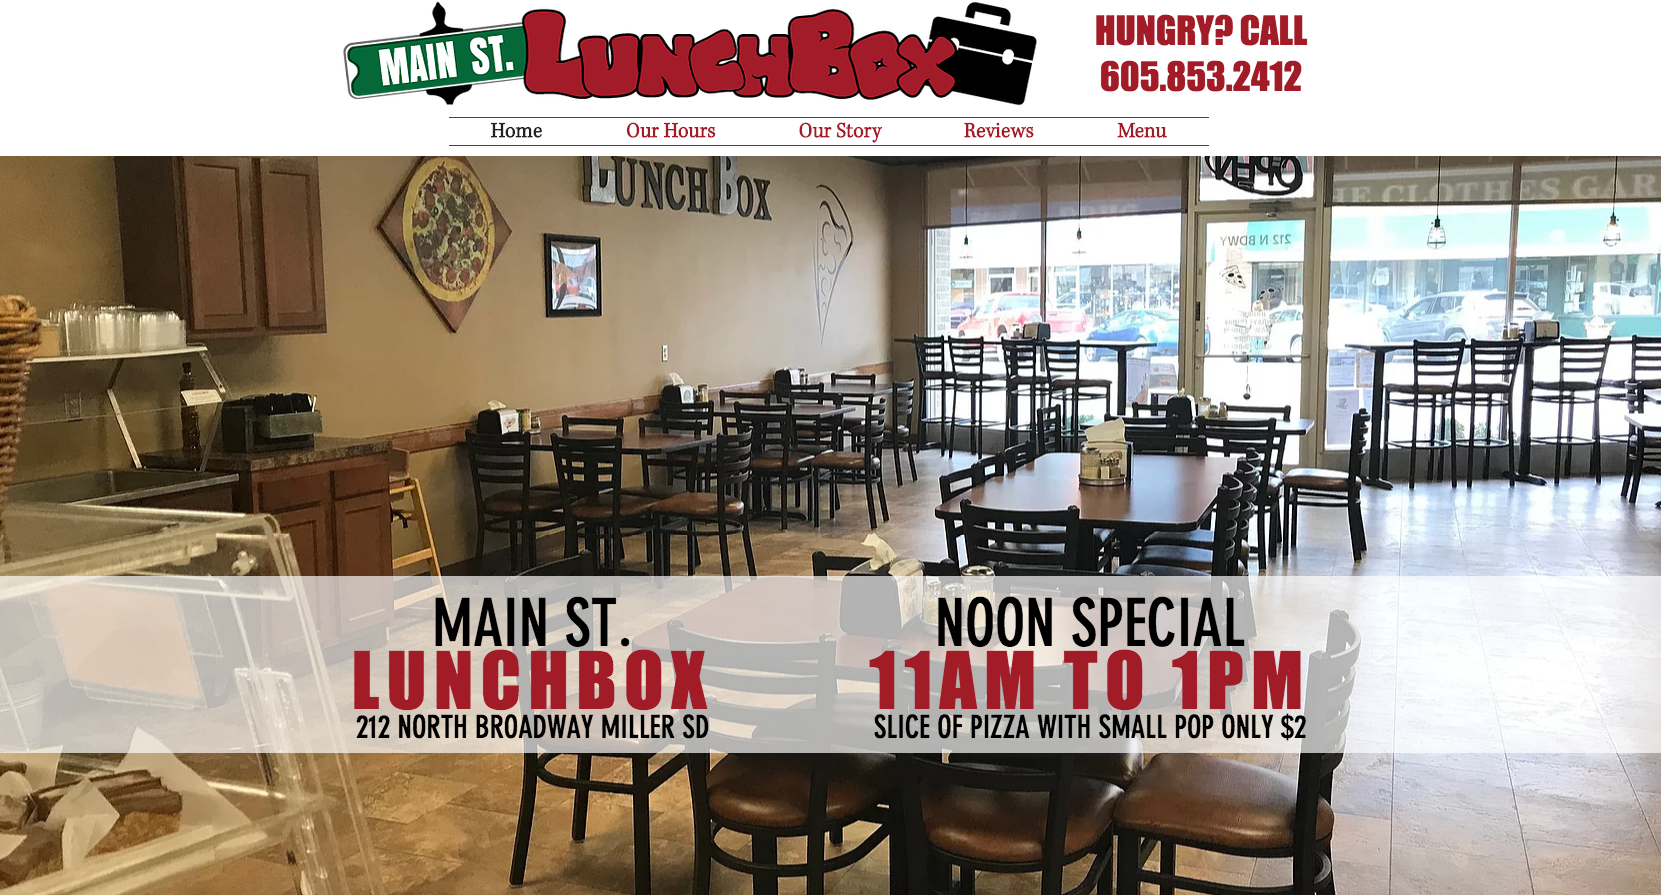 Main St. Lunchbox